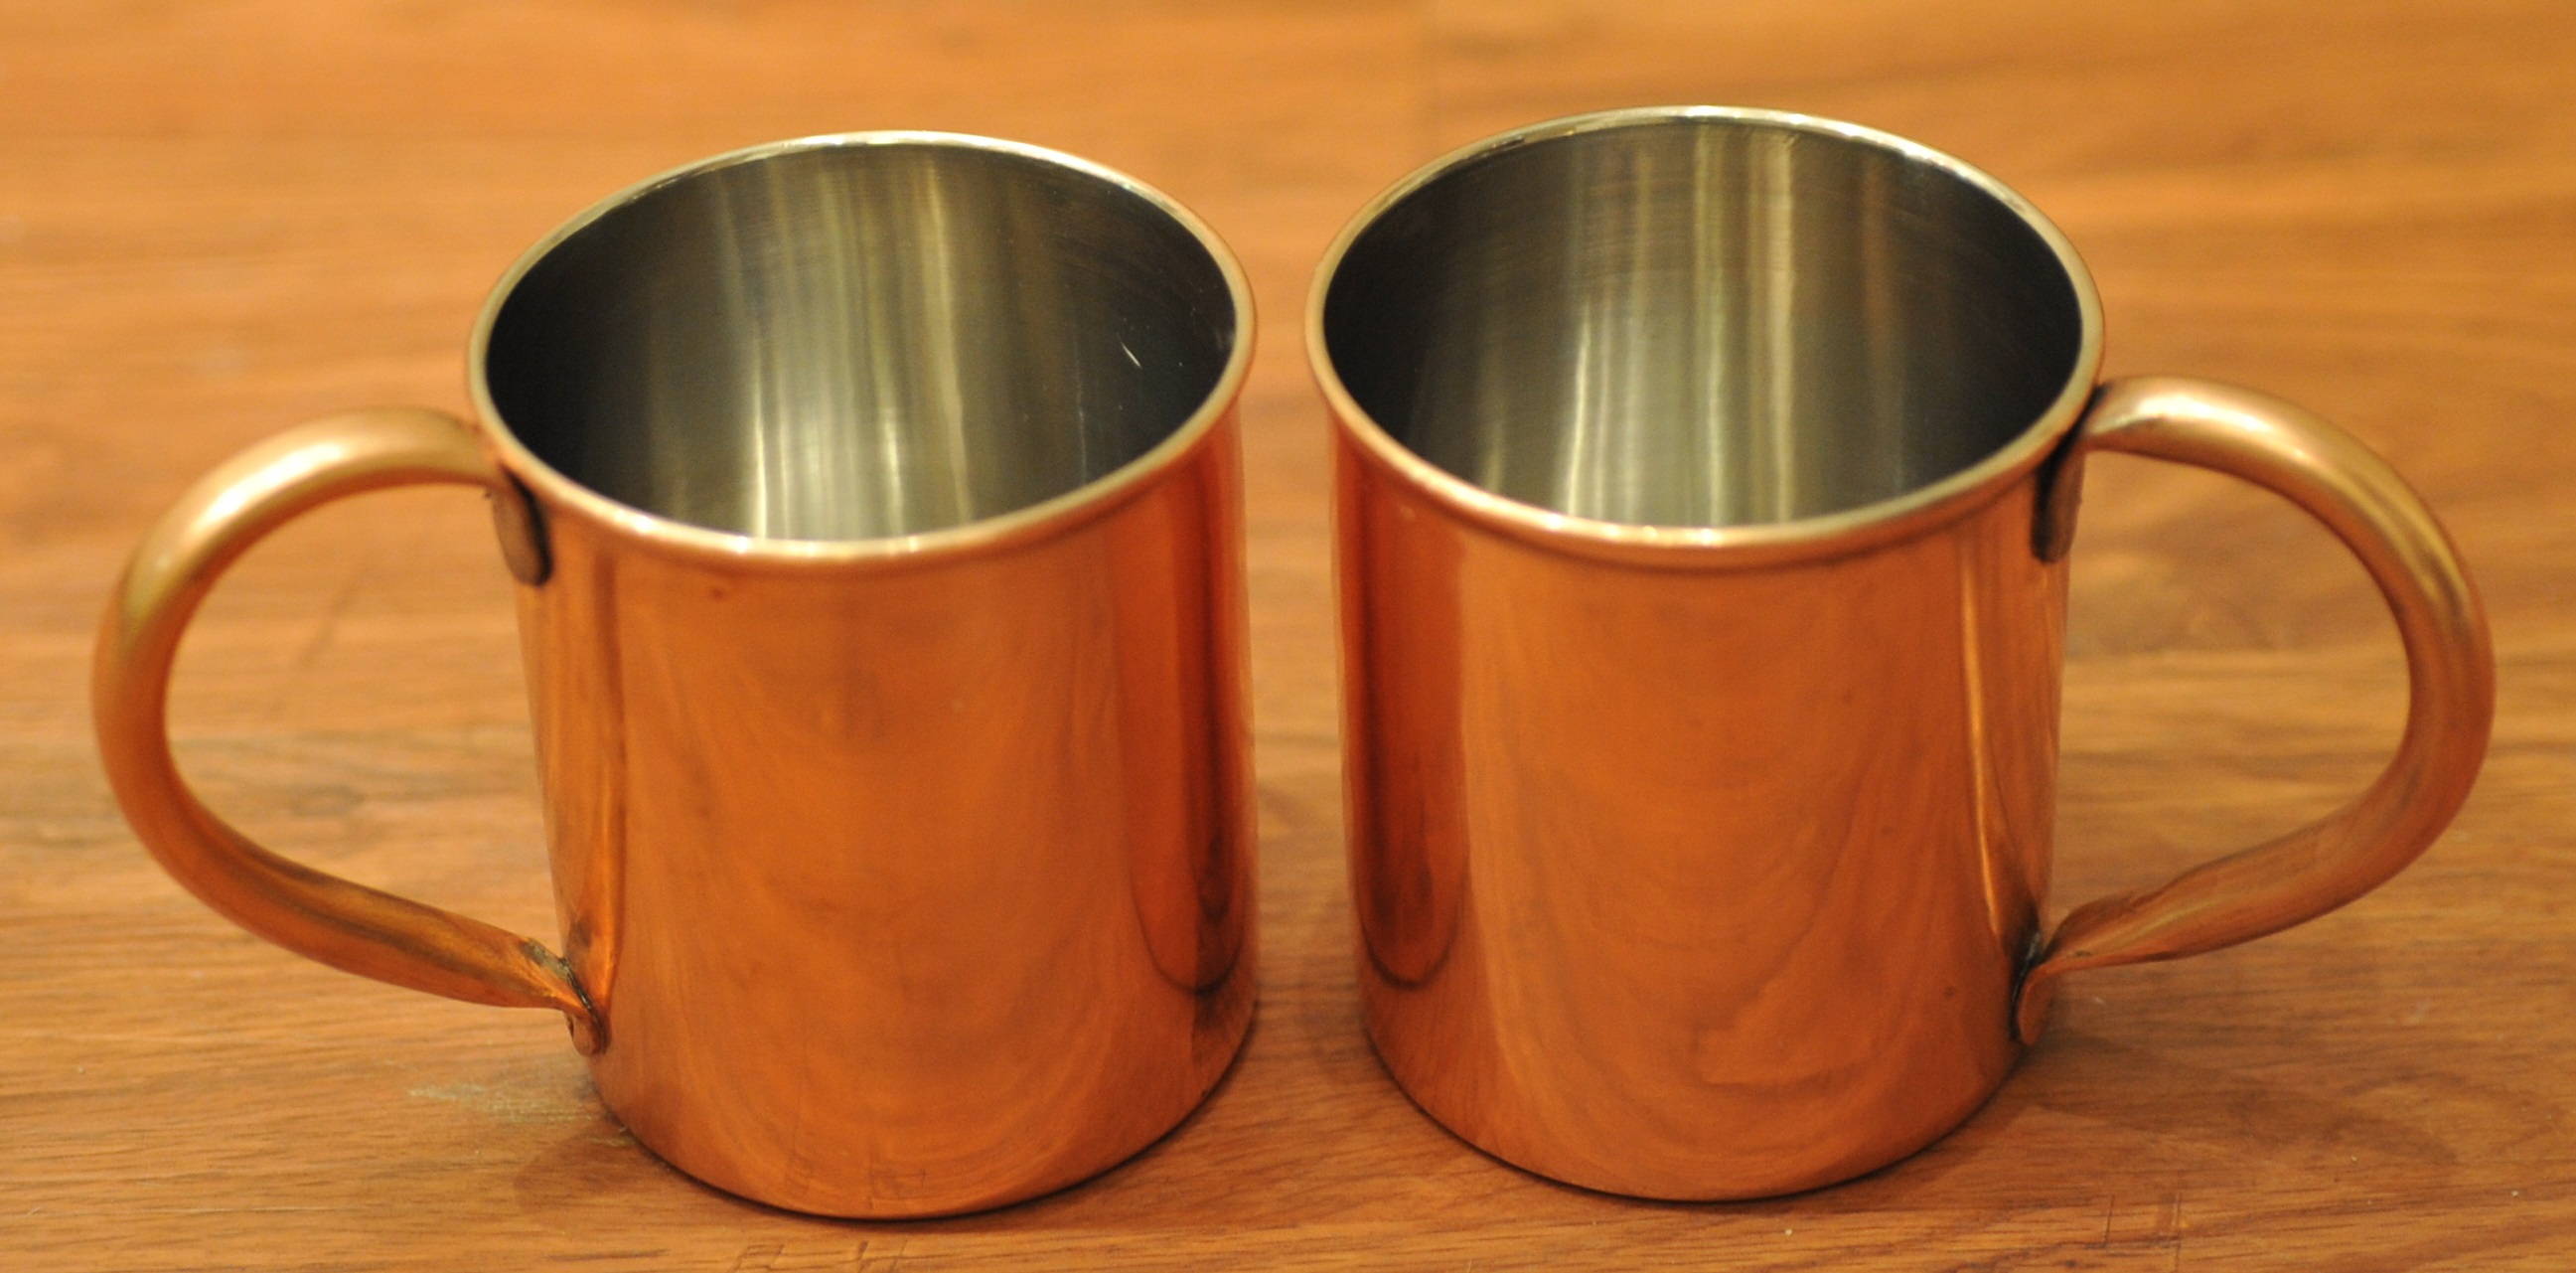 Drink Water in a Cup made of Copper Metal